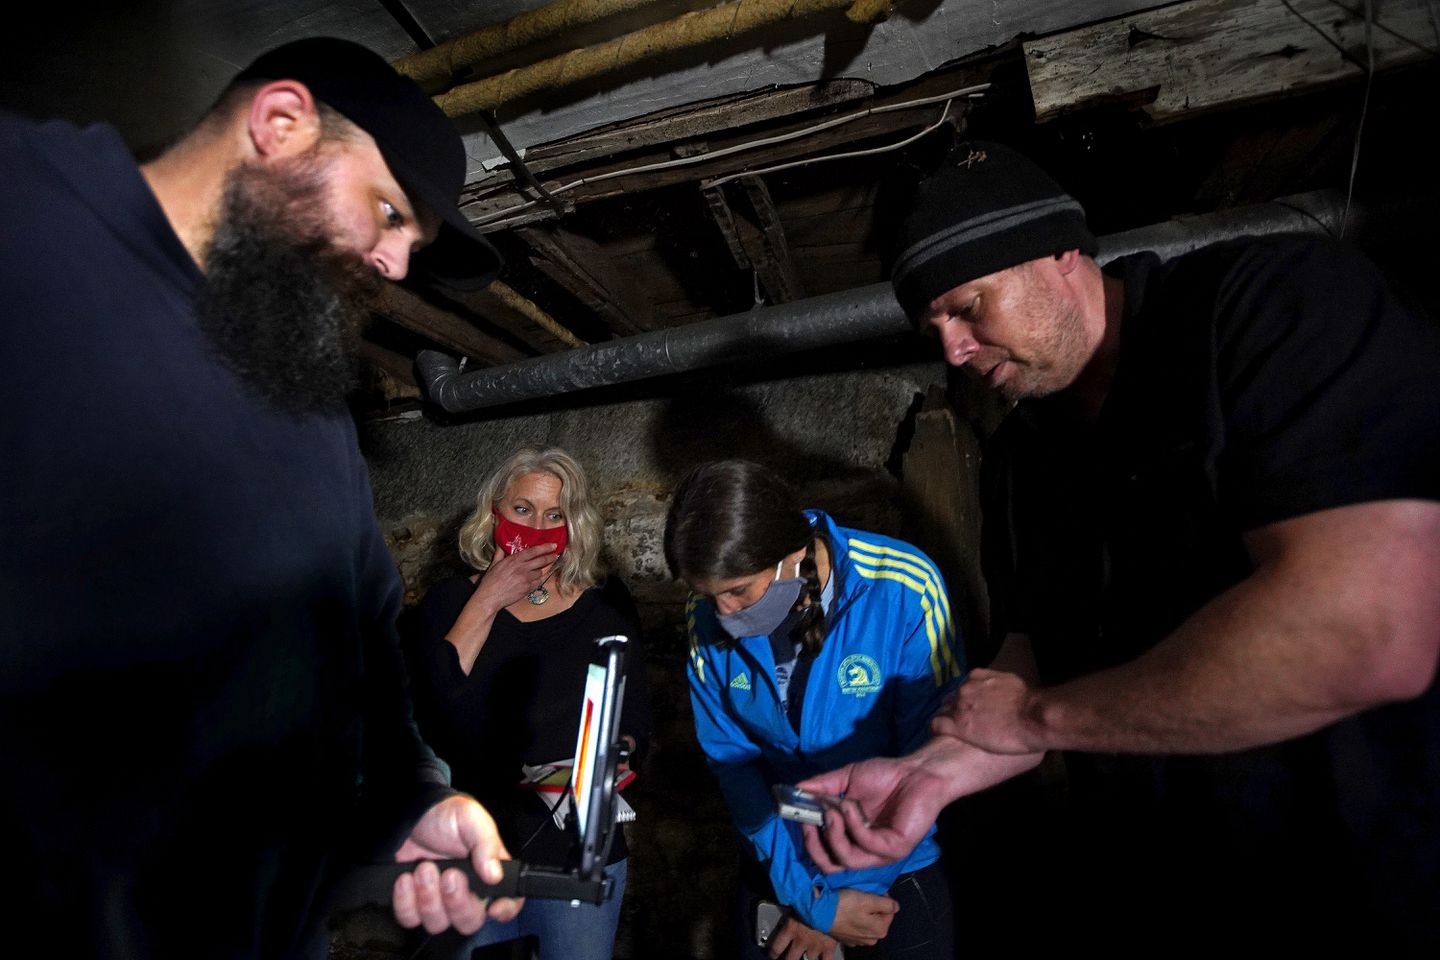 Owner Cory Heinzen and colleague John Huntington try to detect paranormal activity in the cellar of the house with reporter Amanda Milkovits and her sister Susanne Carpenter.